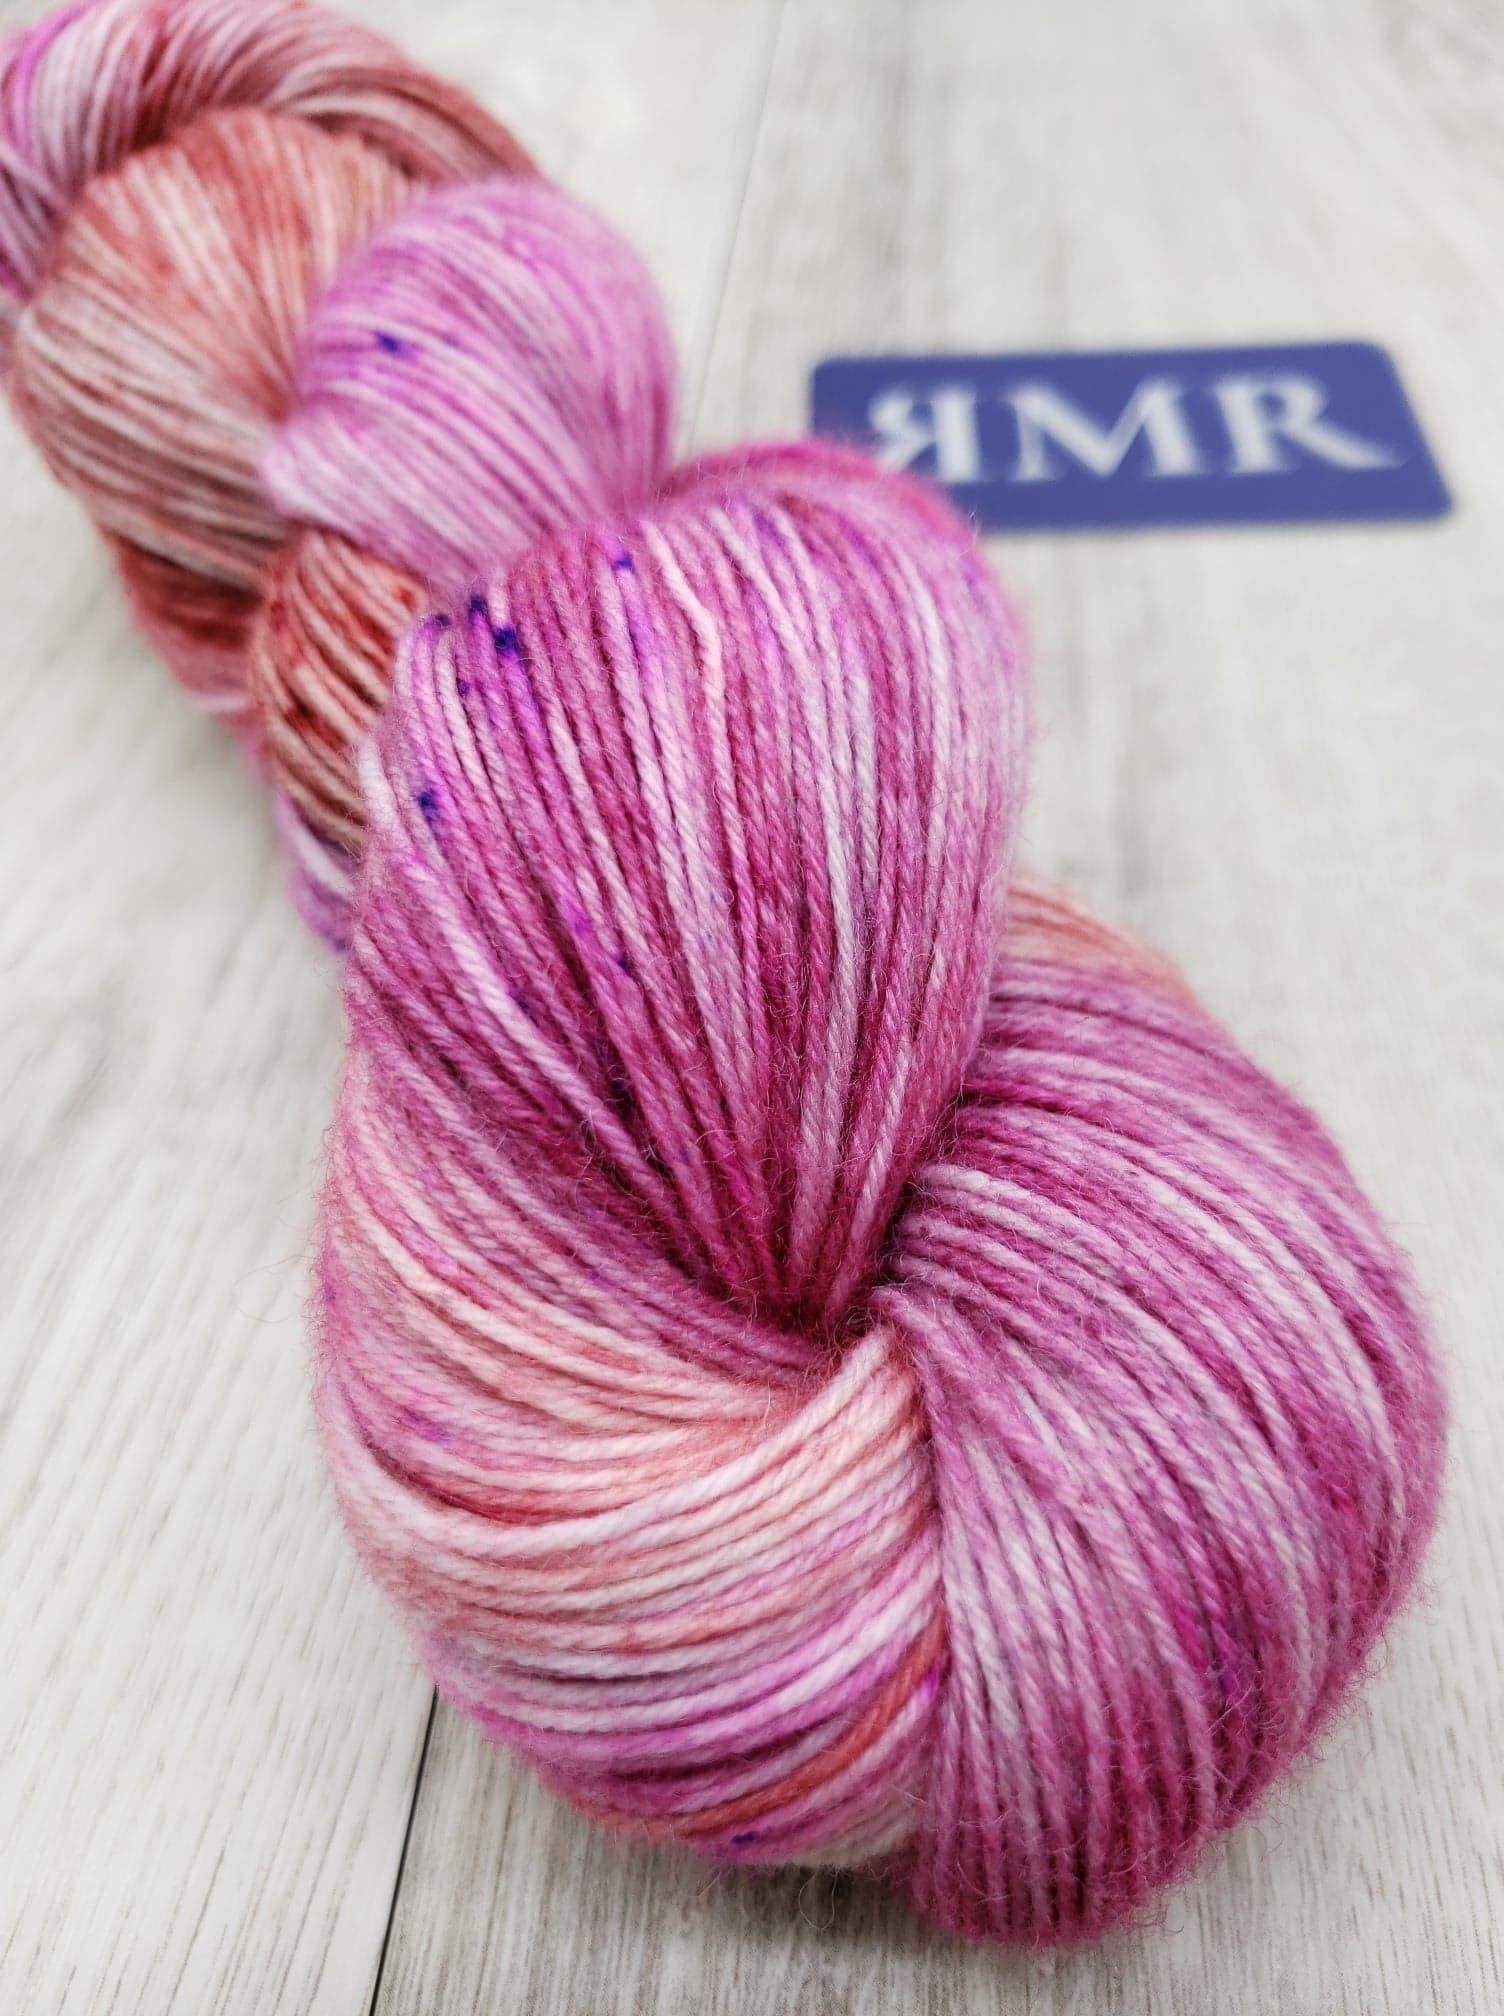 RMR Yarn Co. - More Colors! - Pre-Orders (Shipped Within 2 Weeks)